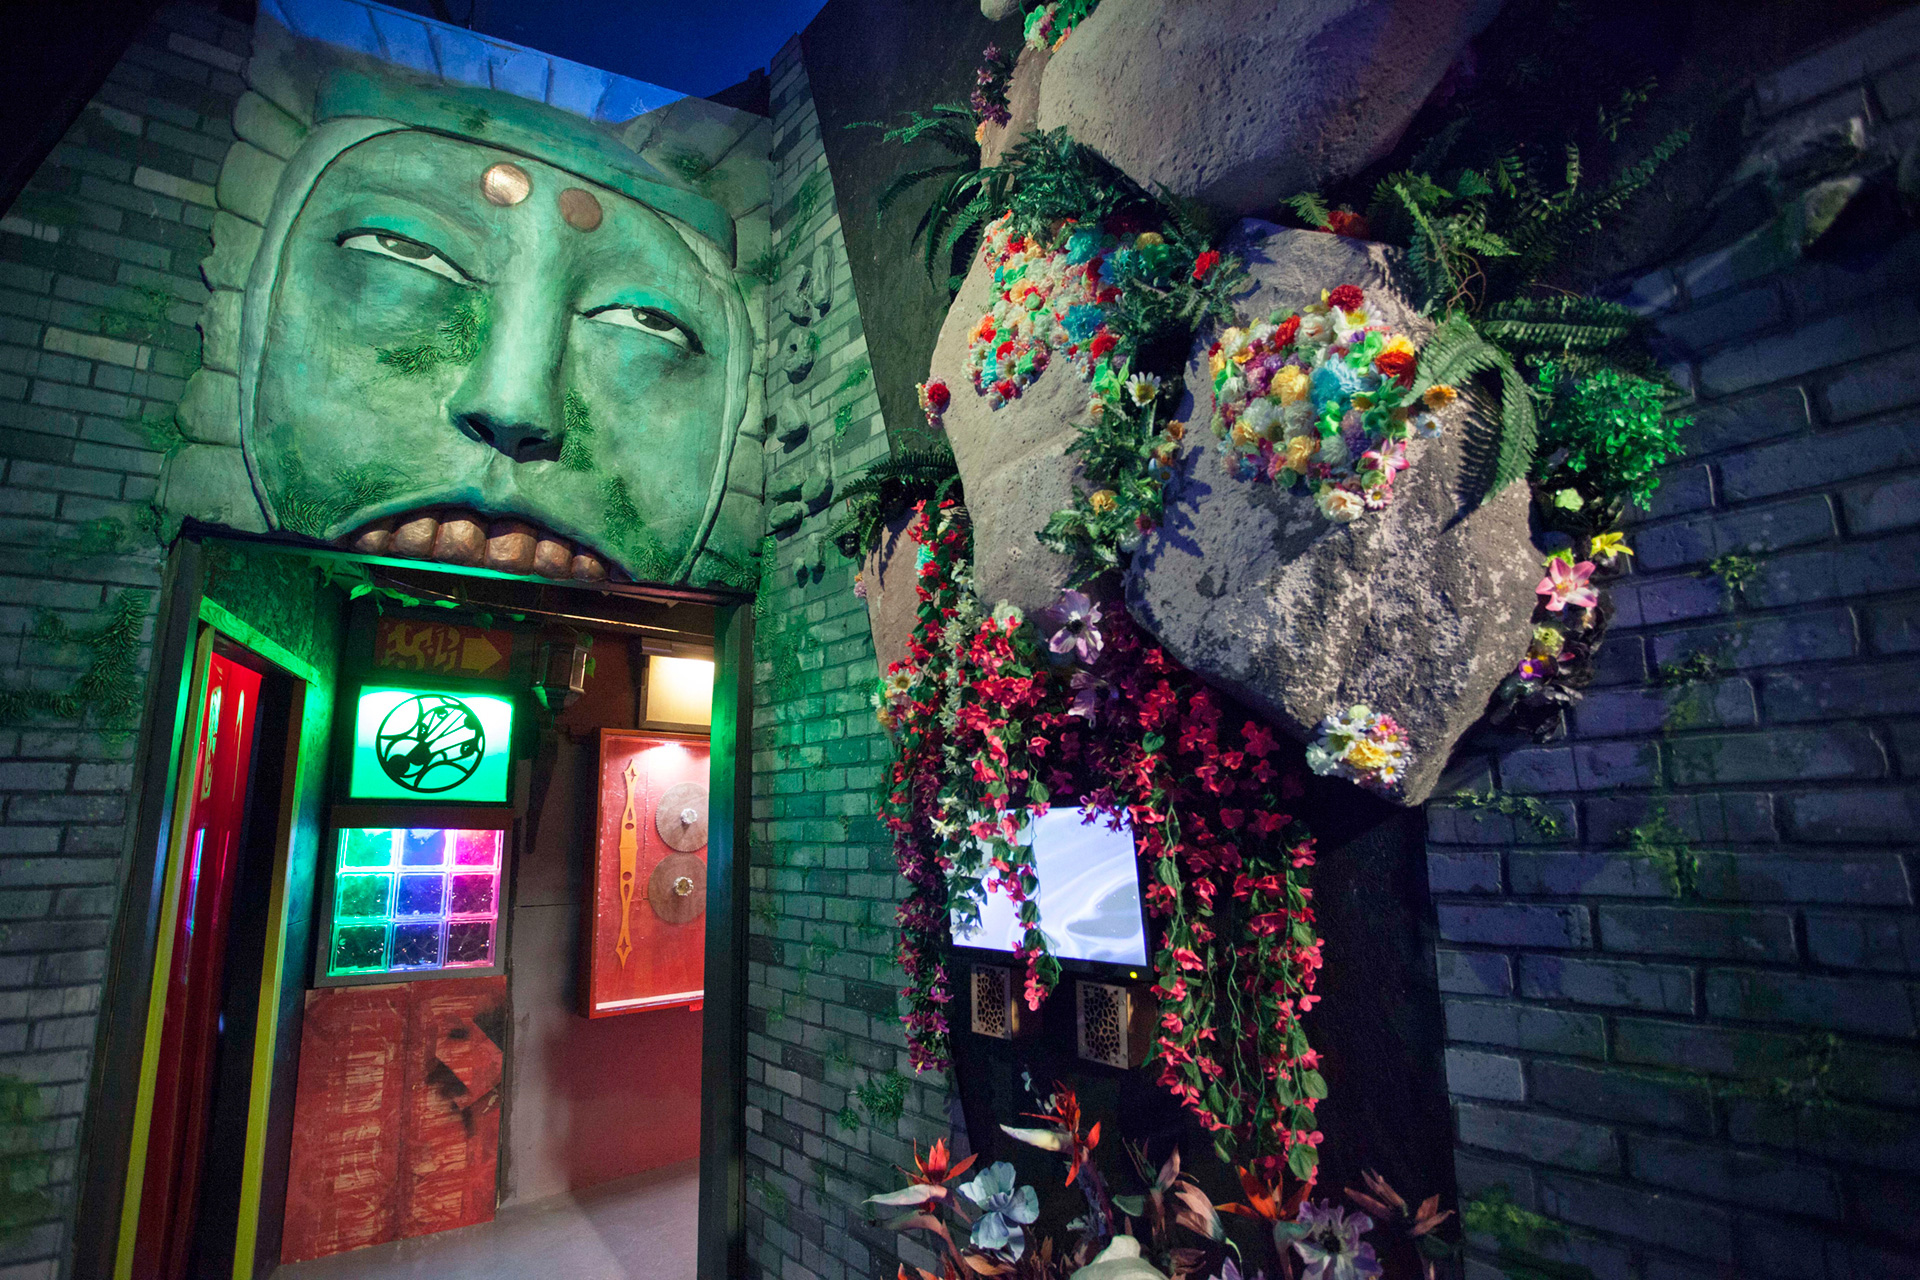 A view of an exhibition by Meow Wolf | Meow Wolf | STIRworld